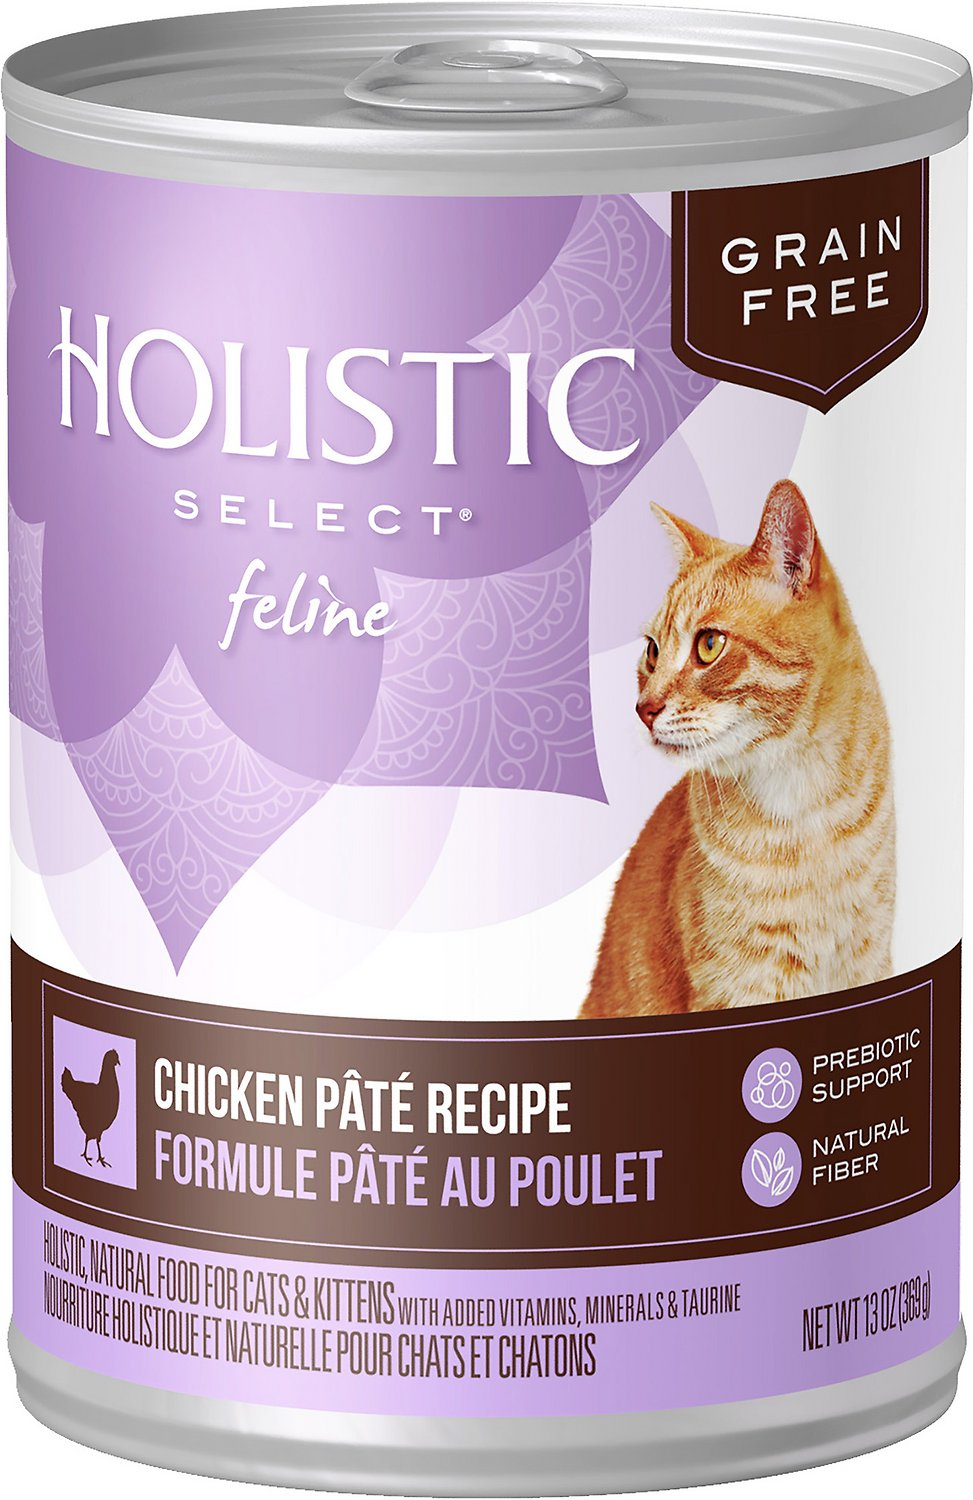 Holistic Select Chicken Pate Recipe Grain-Free Canned Cat & Kitten Food, 5.5-oz